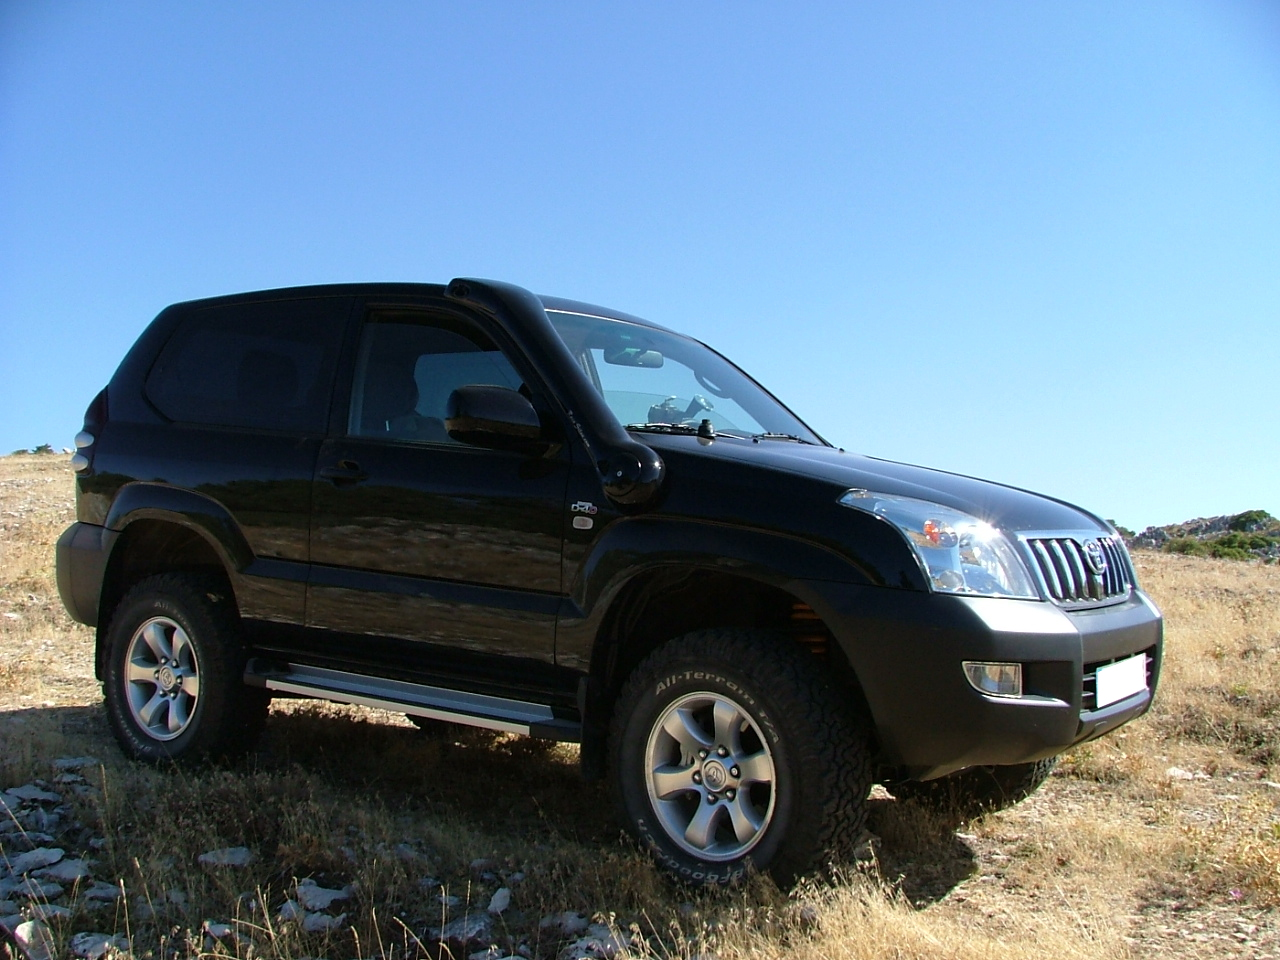 TOYOTA LAND CRUISER 120 / 125